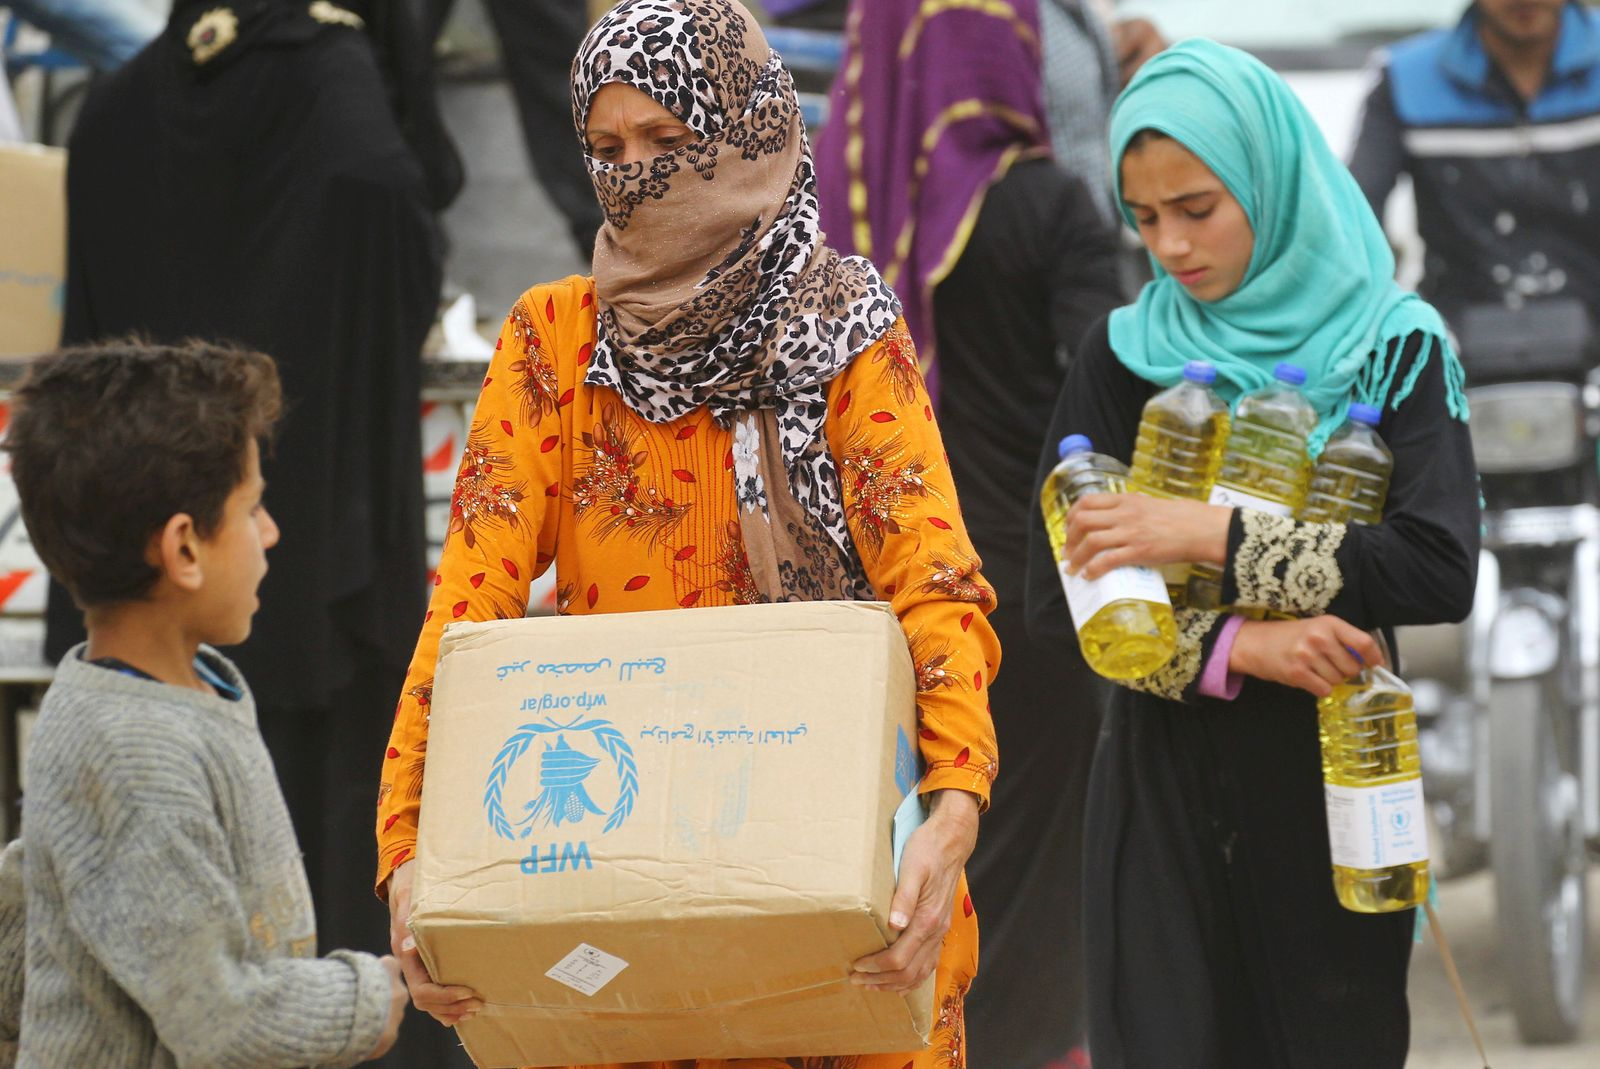 FILE PHOTO: Women carry food aid given by UN's World Food Programme in Raqqa